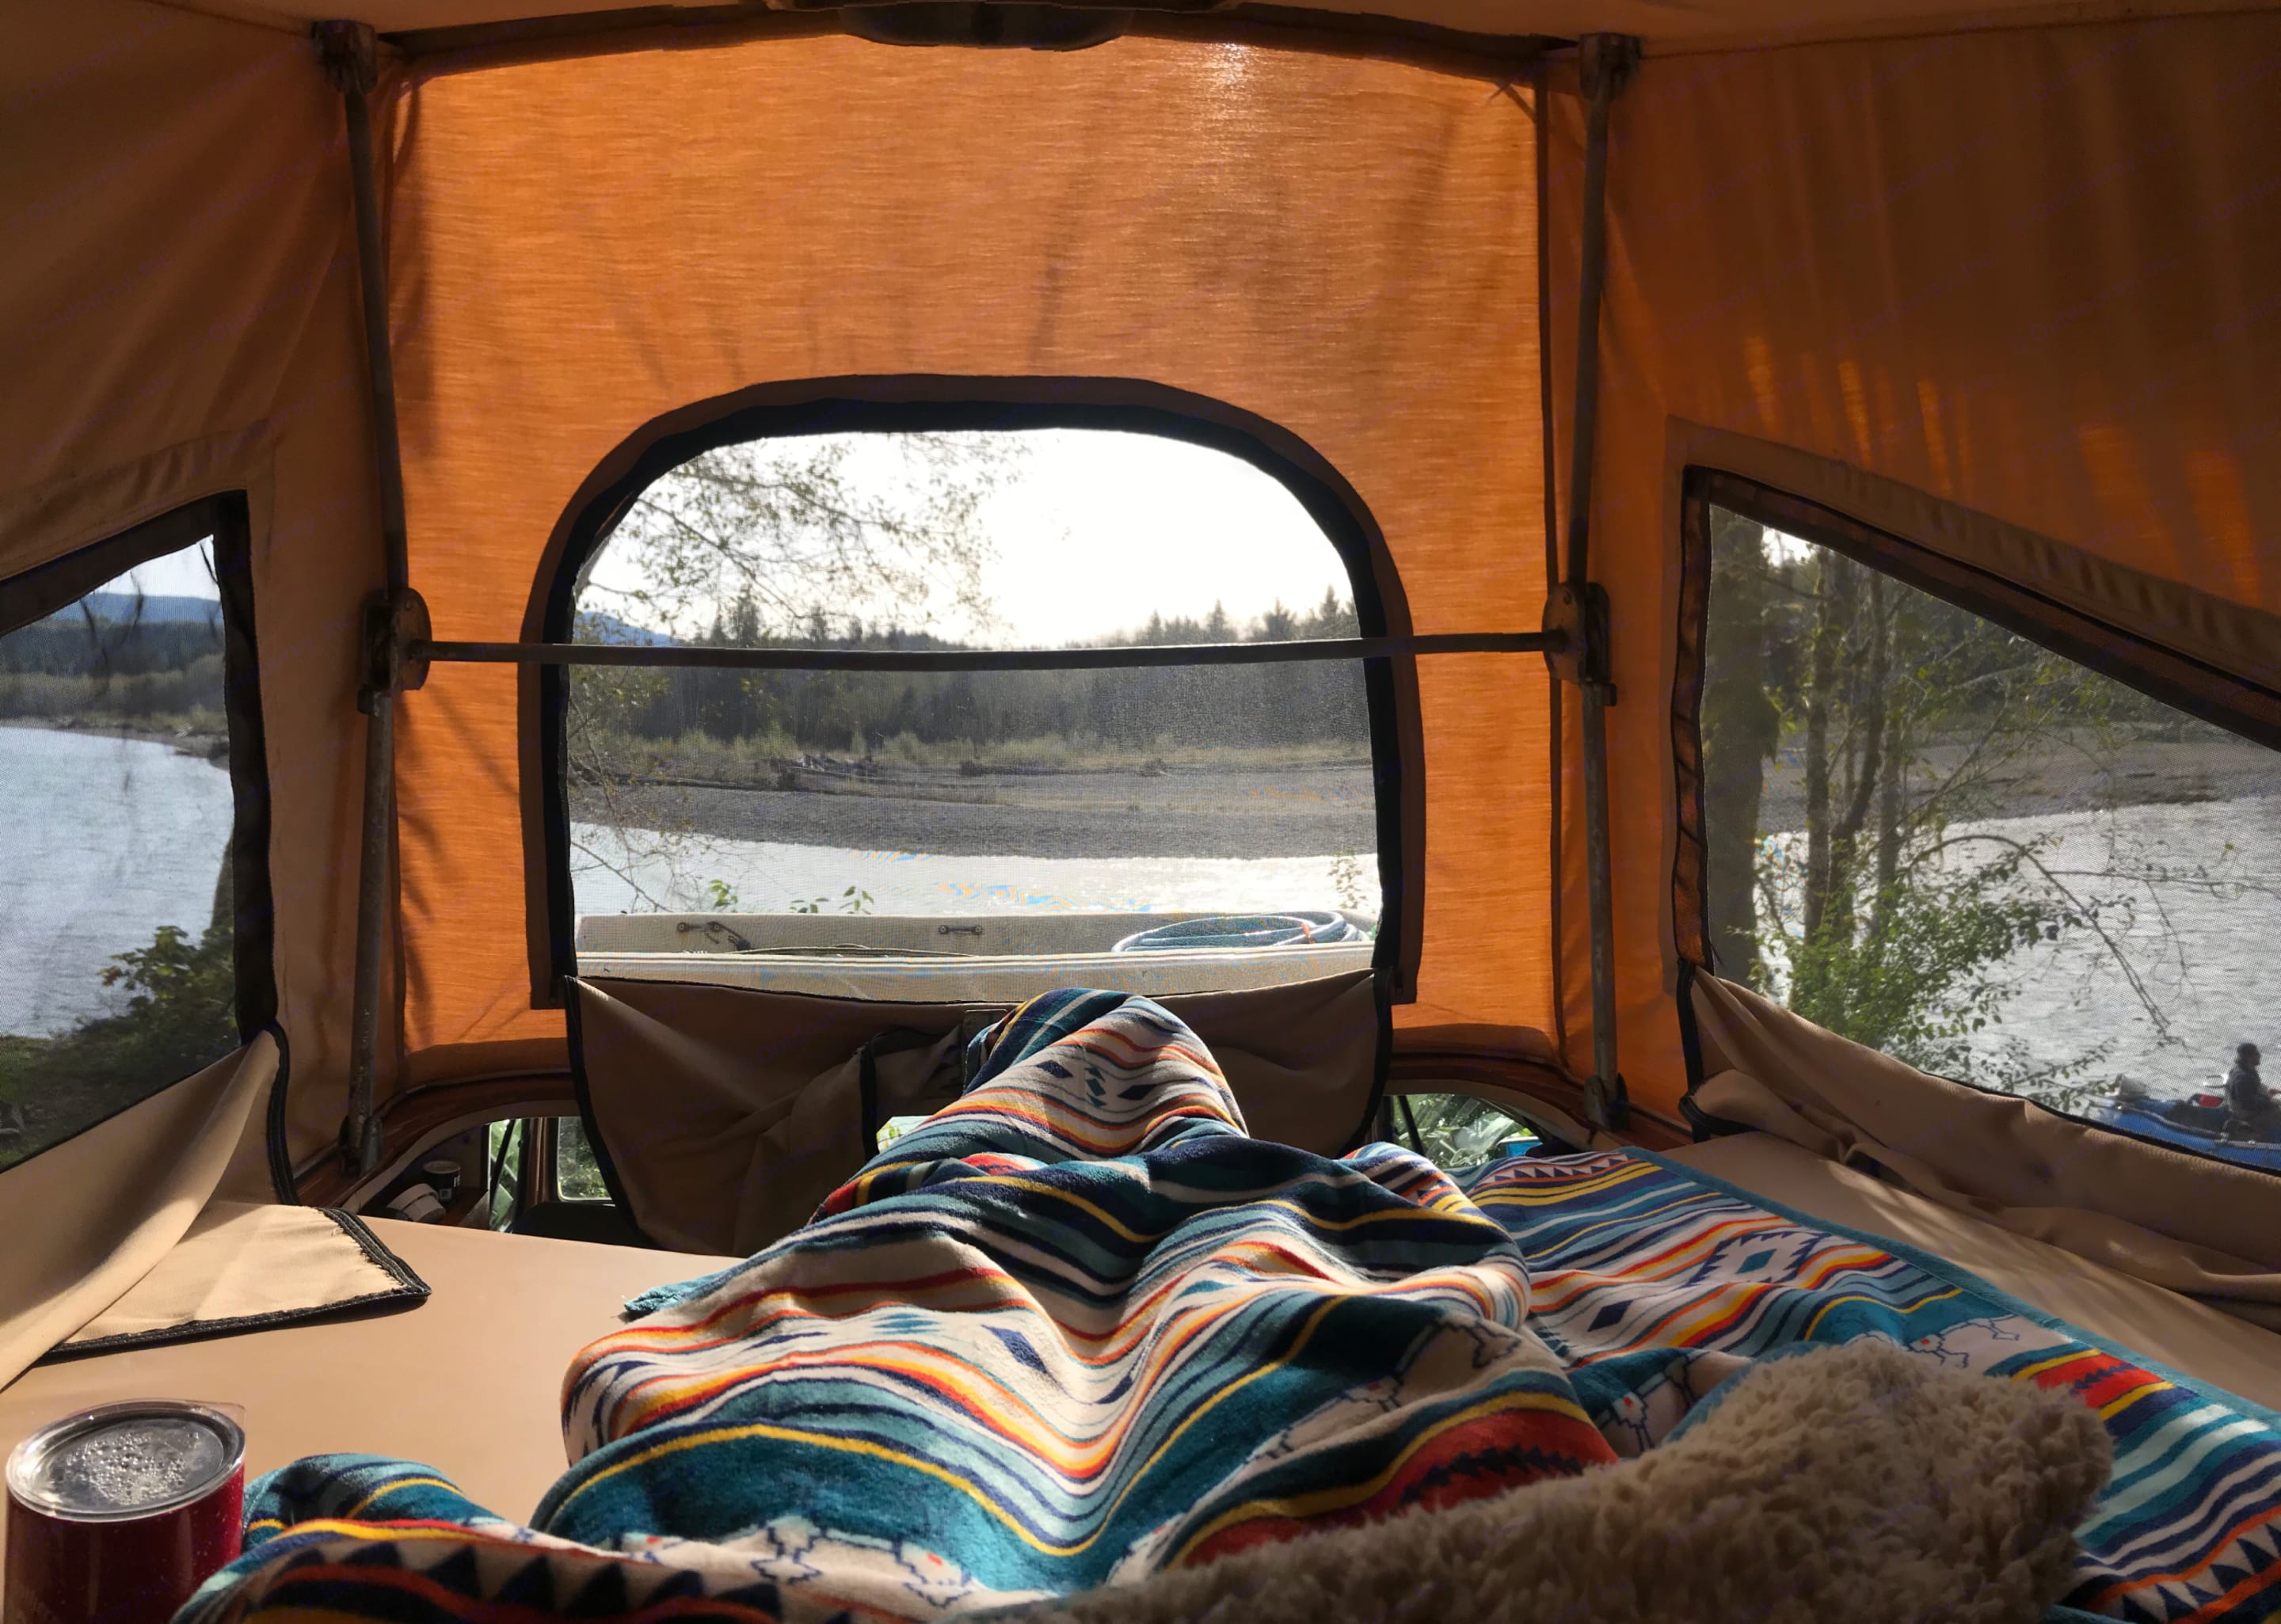 Relaxing in the sun on a fall day in the Hoh rainforest. . Volkswagen Westfalia 1982